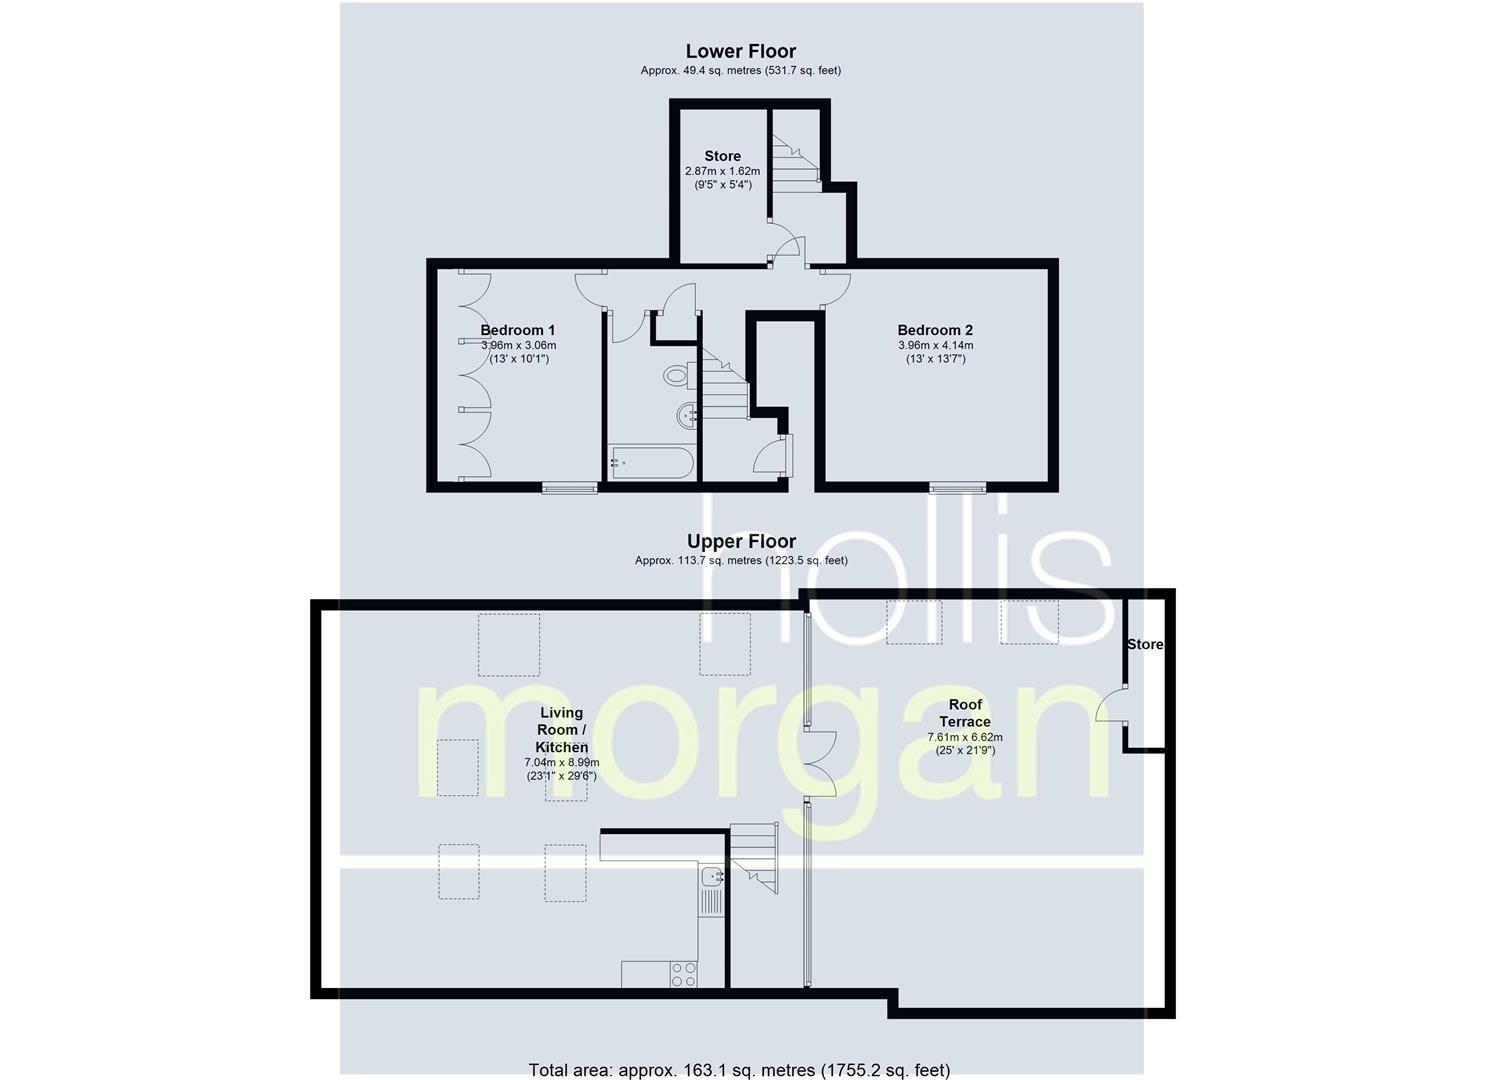 Floorplans For PENTHOUSE - REDUCED PRICE FOR AUCTION